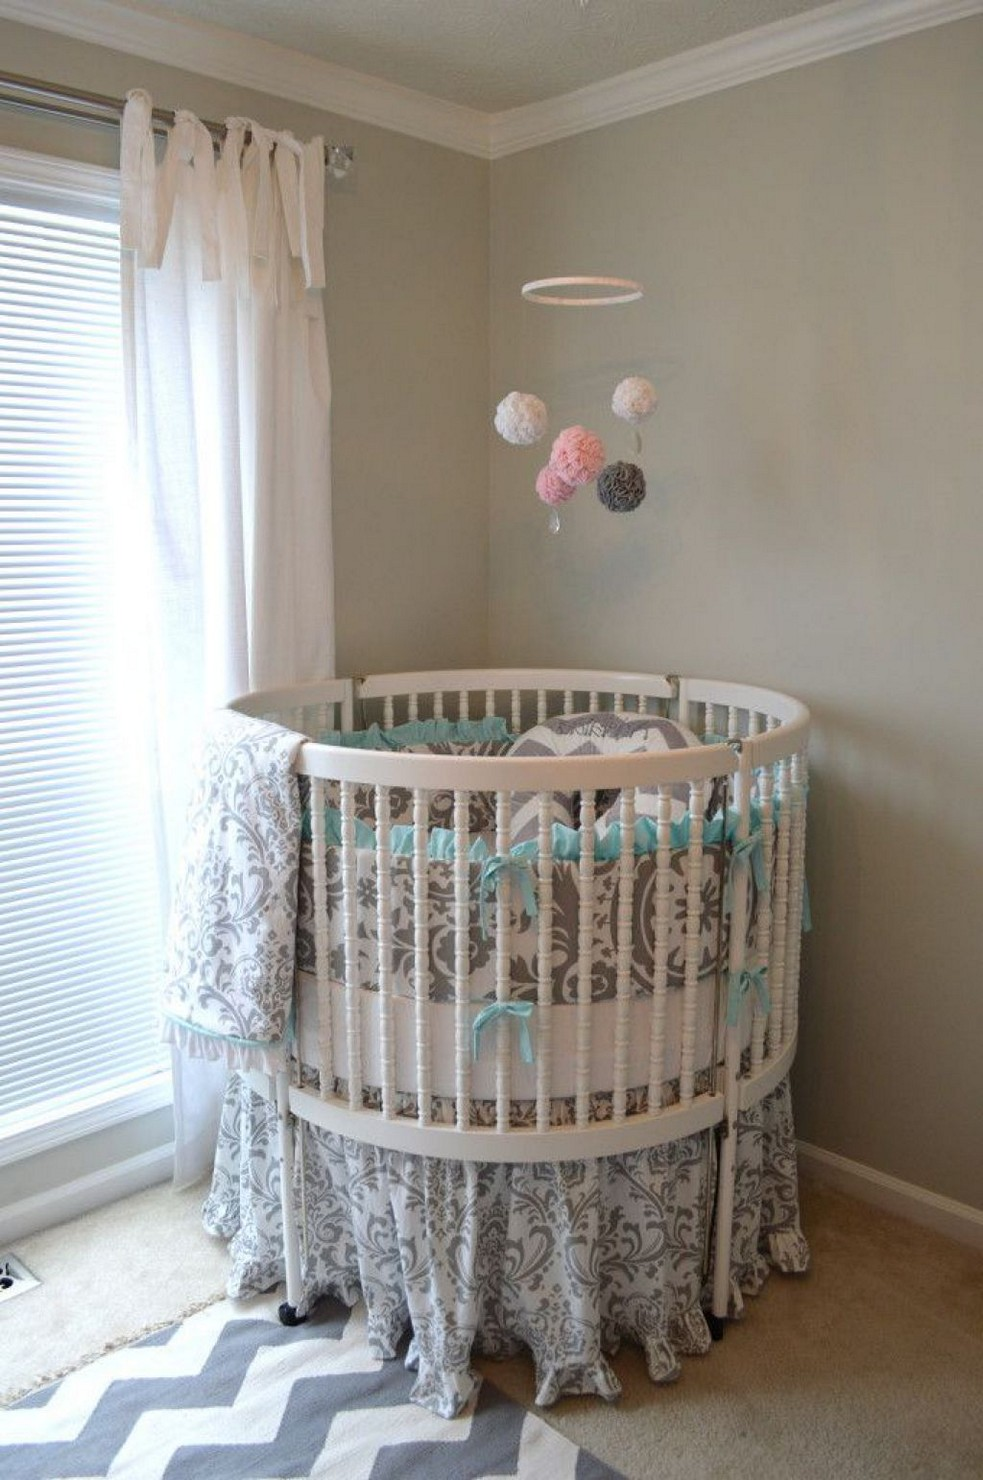 Cheap Cribs | Distressed Baby Crib | Cheap Baby Cribs Under 100 Dollars